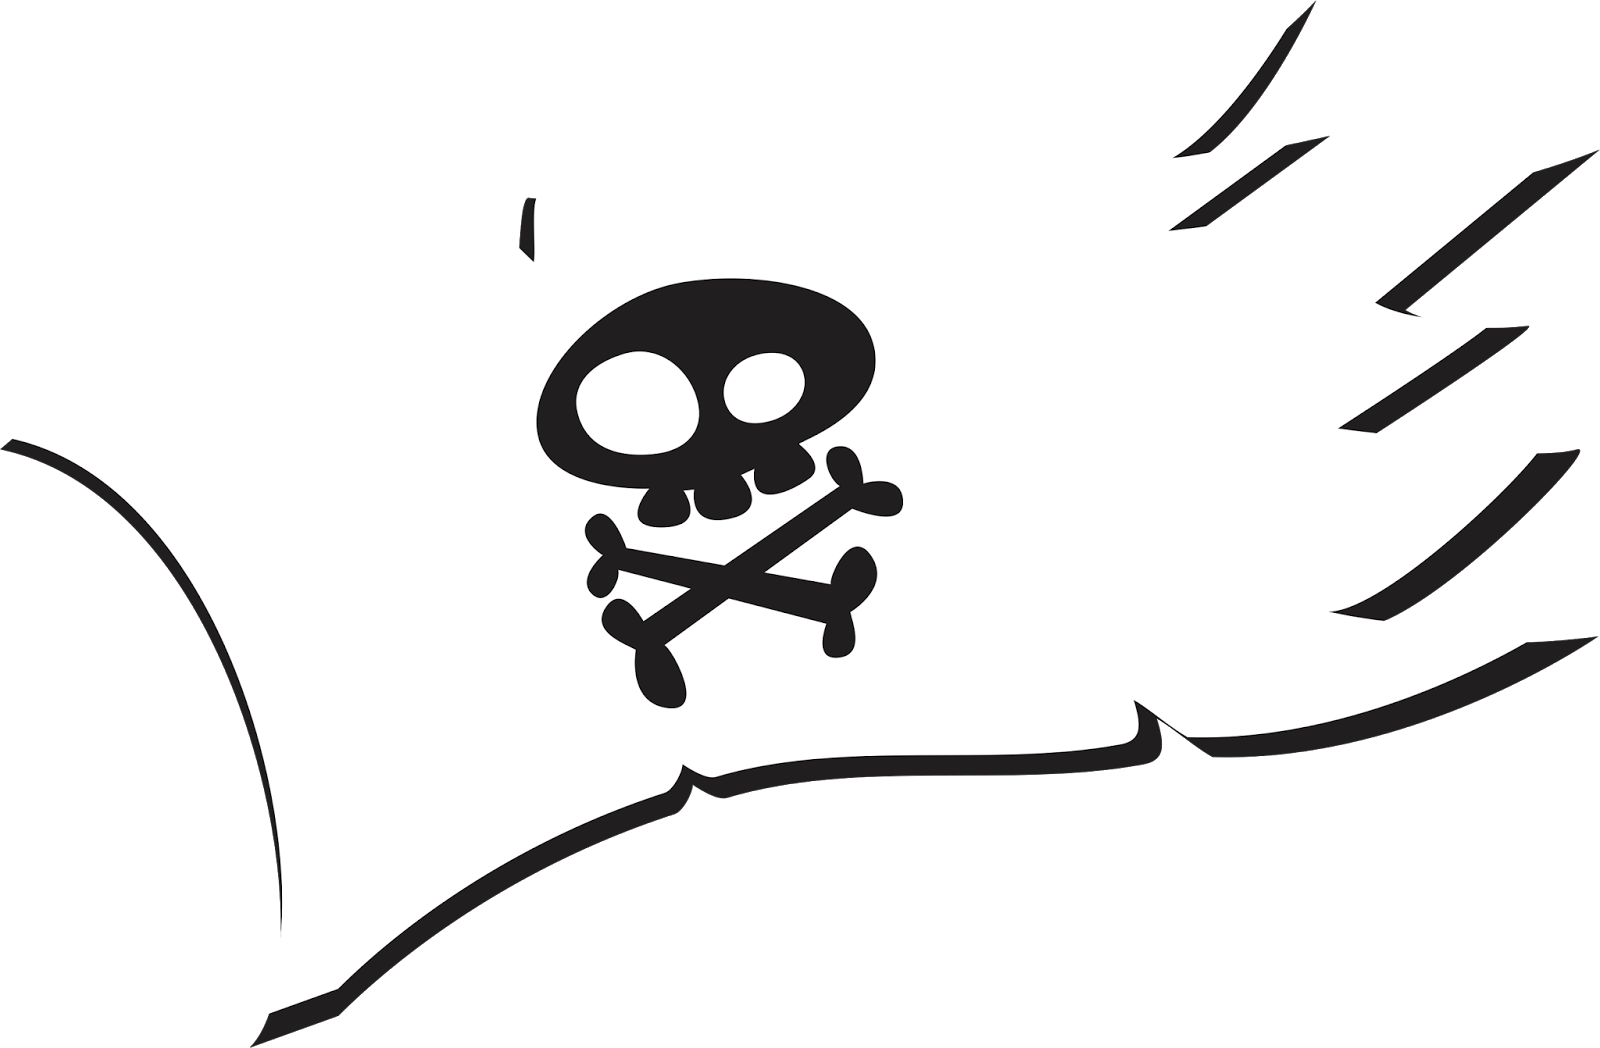 jake the pirate jake and the neverland pirates clipart oh my fiesta in the pirate jake